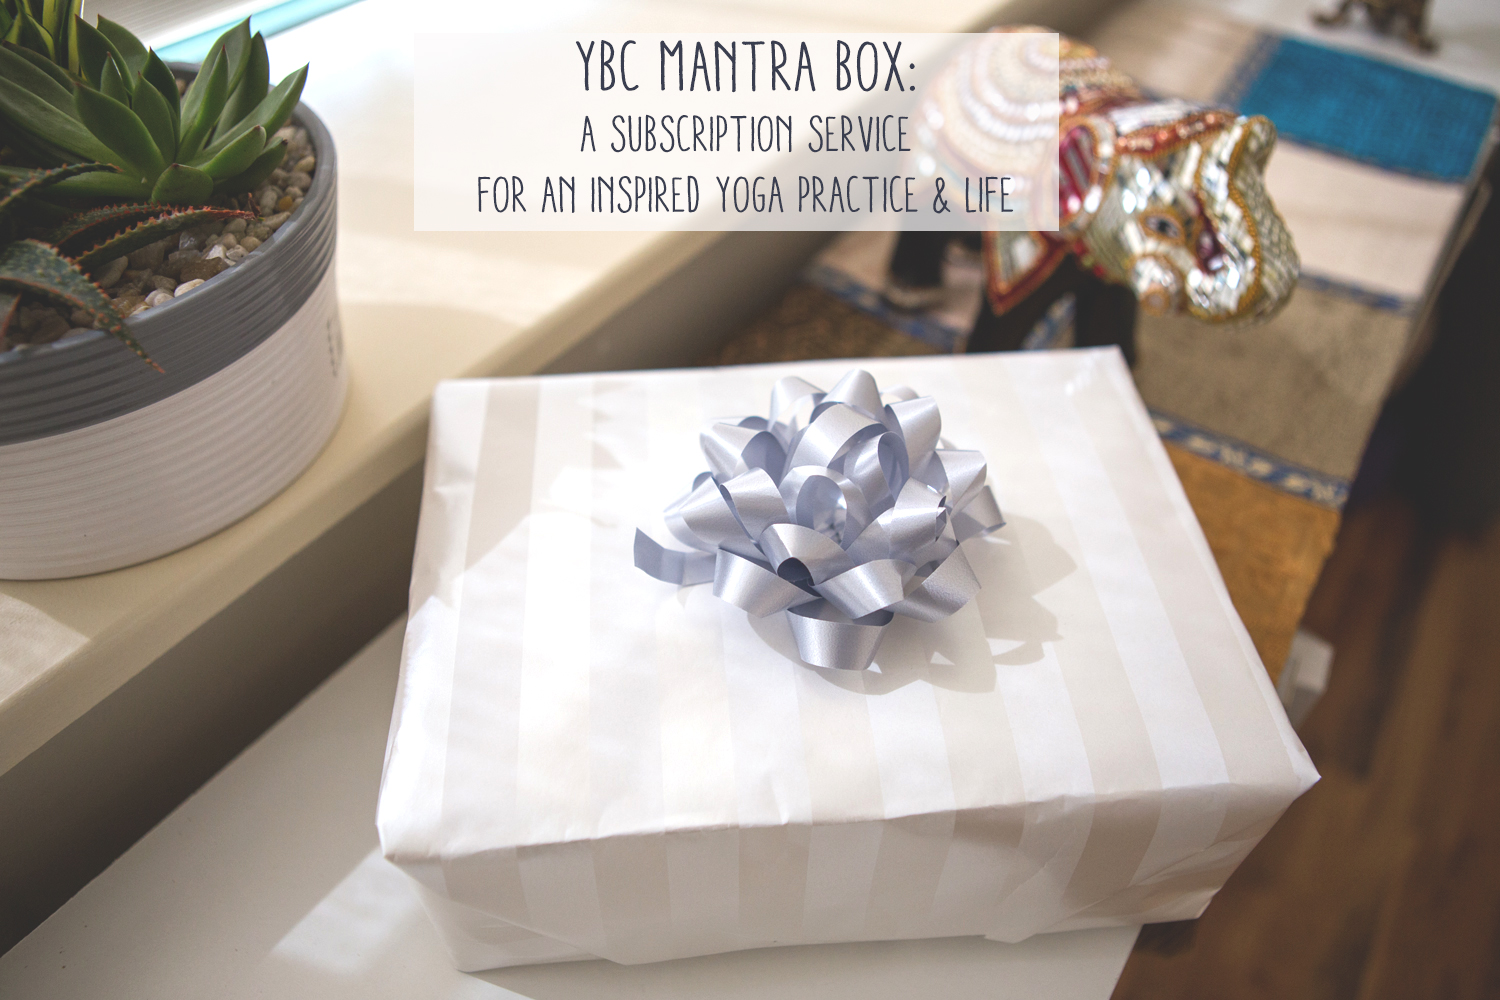 The YBC Mantra Box is available for pre-sale!